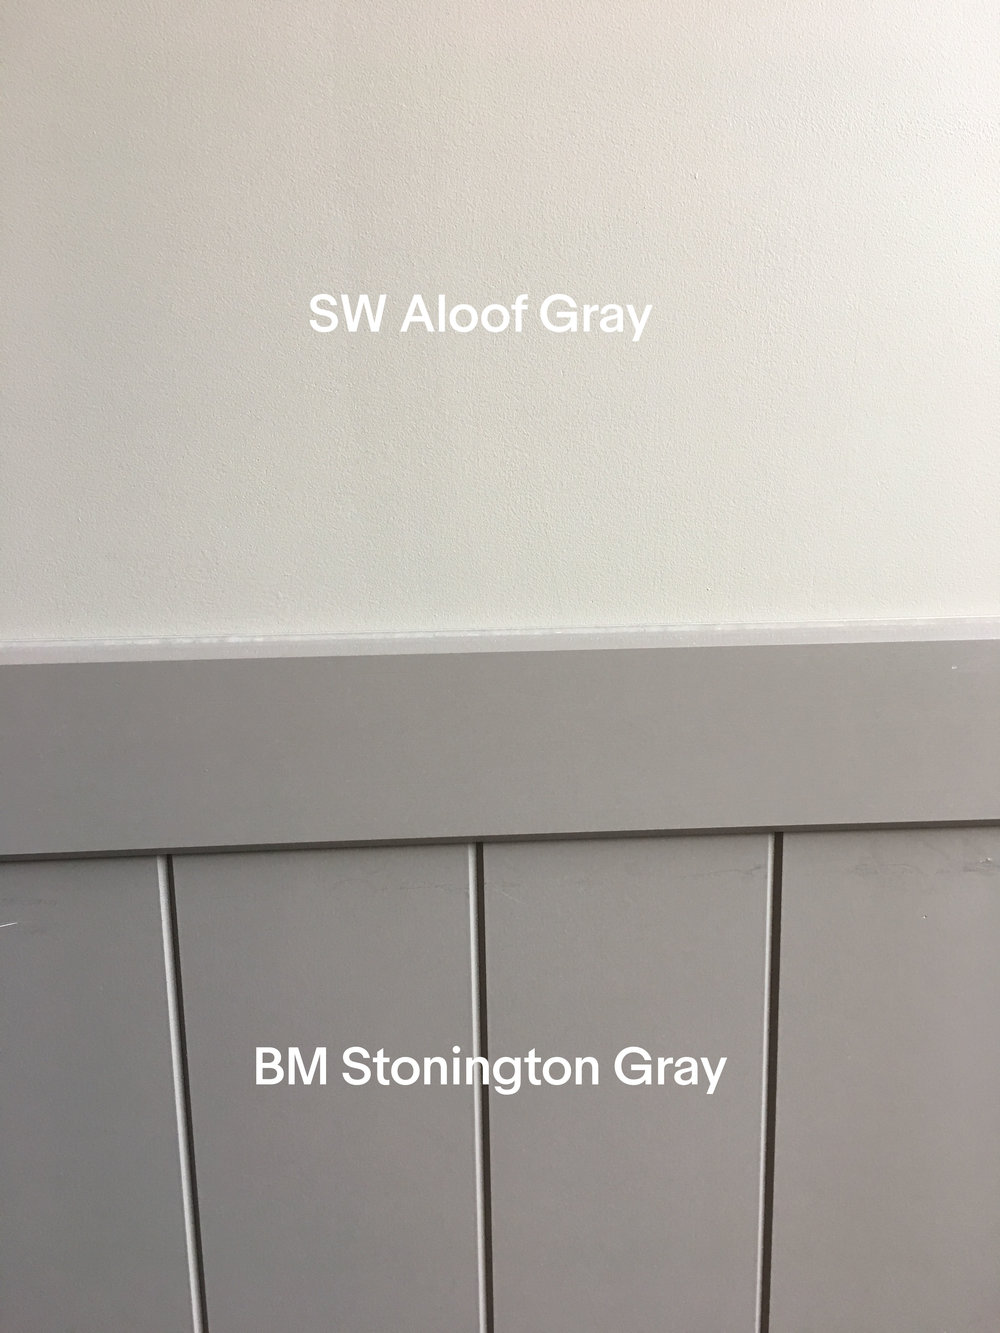 Sherwin Williams Aloof Gray and Benjamin Moore Stonington Gray